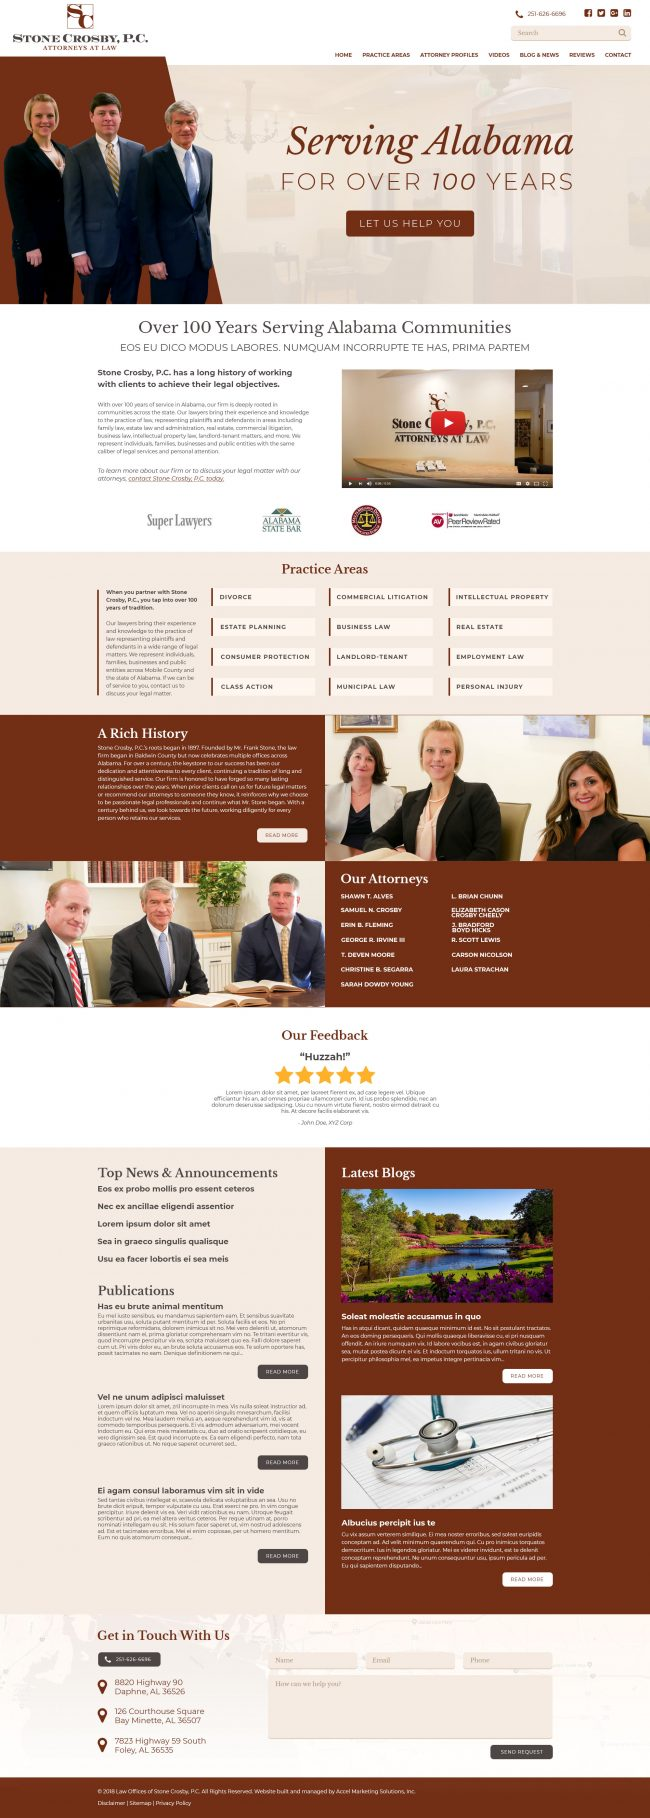 Stone Crosby Law Website Design